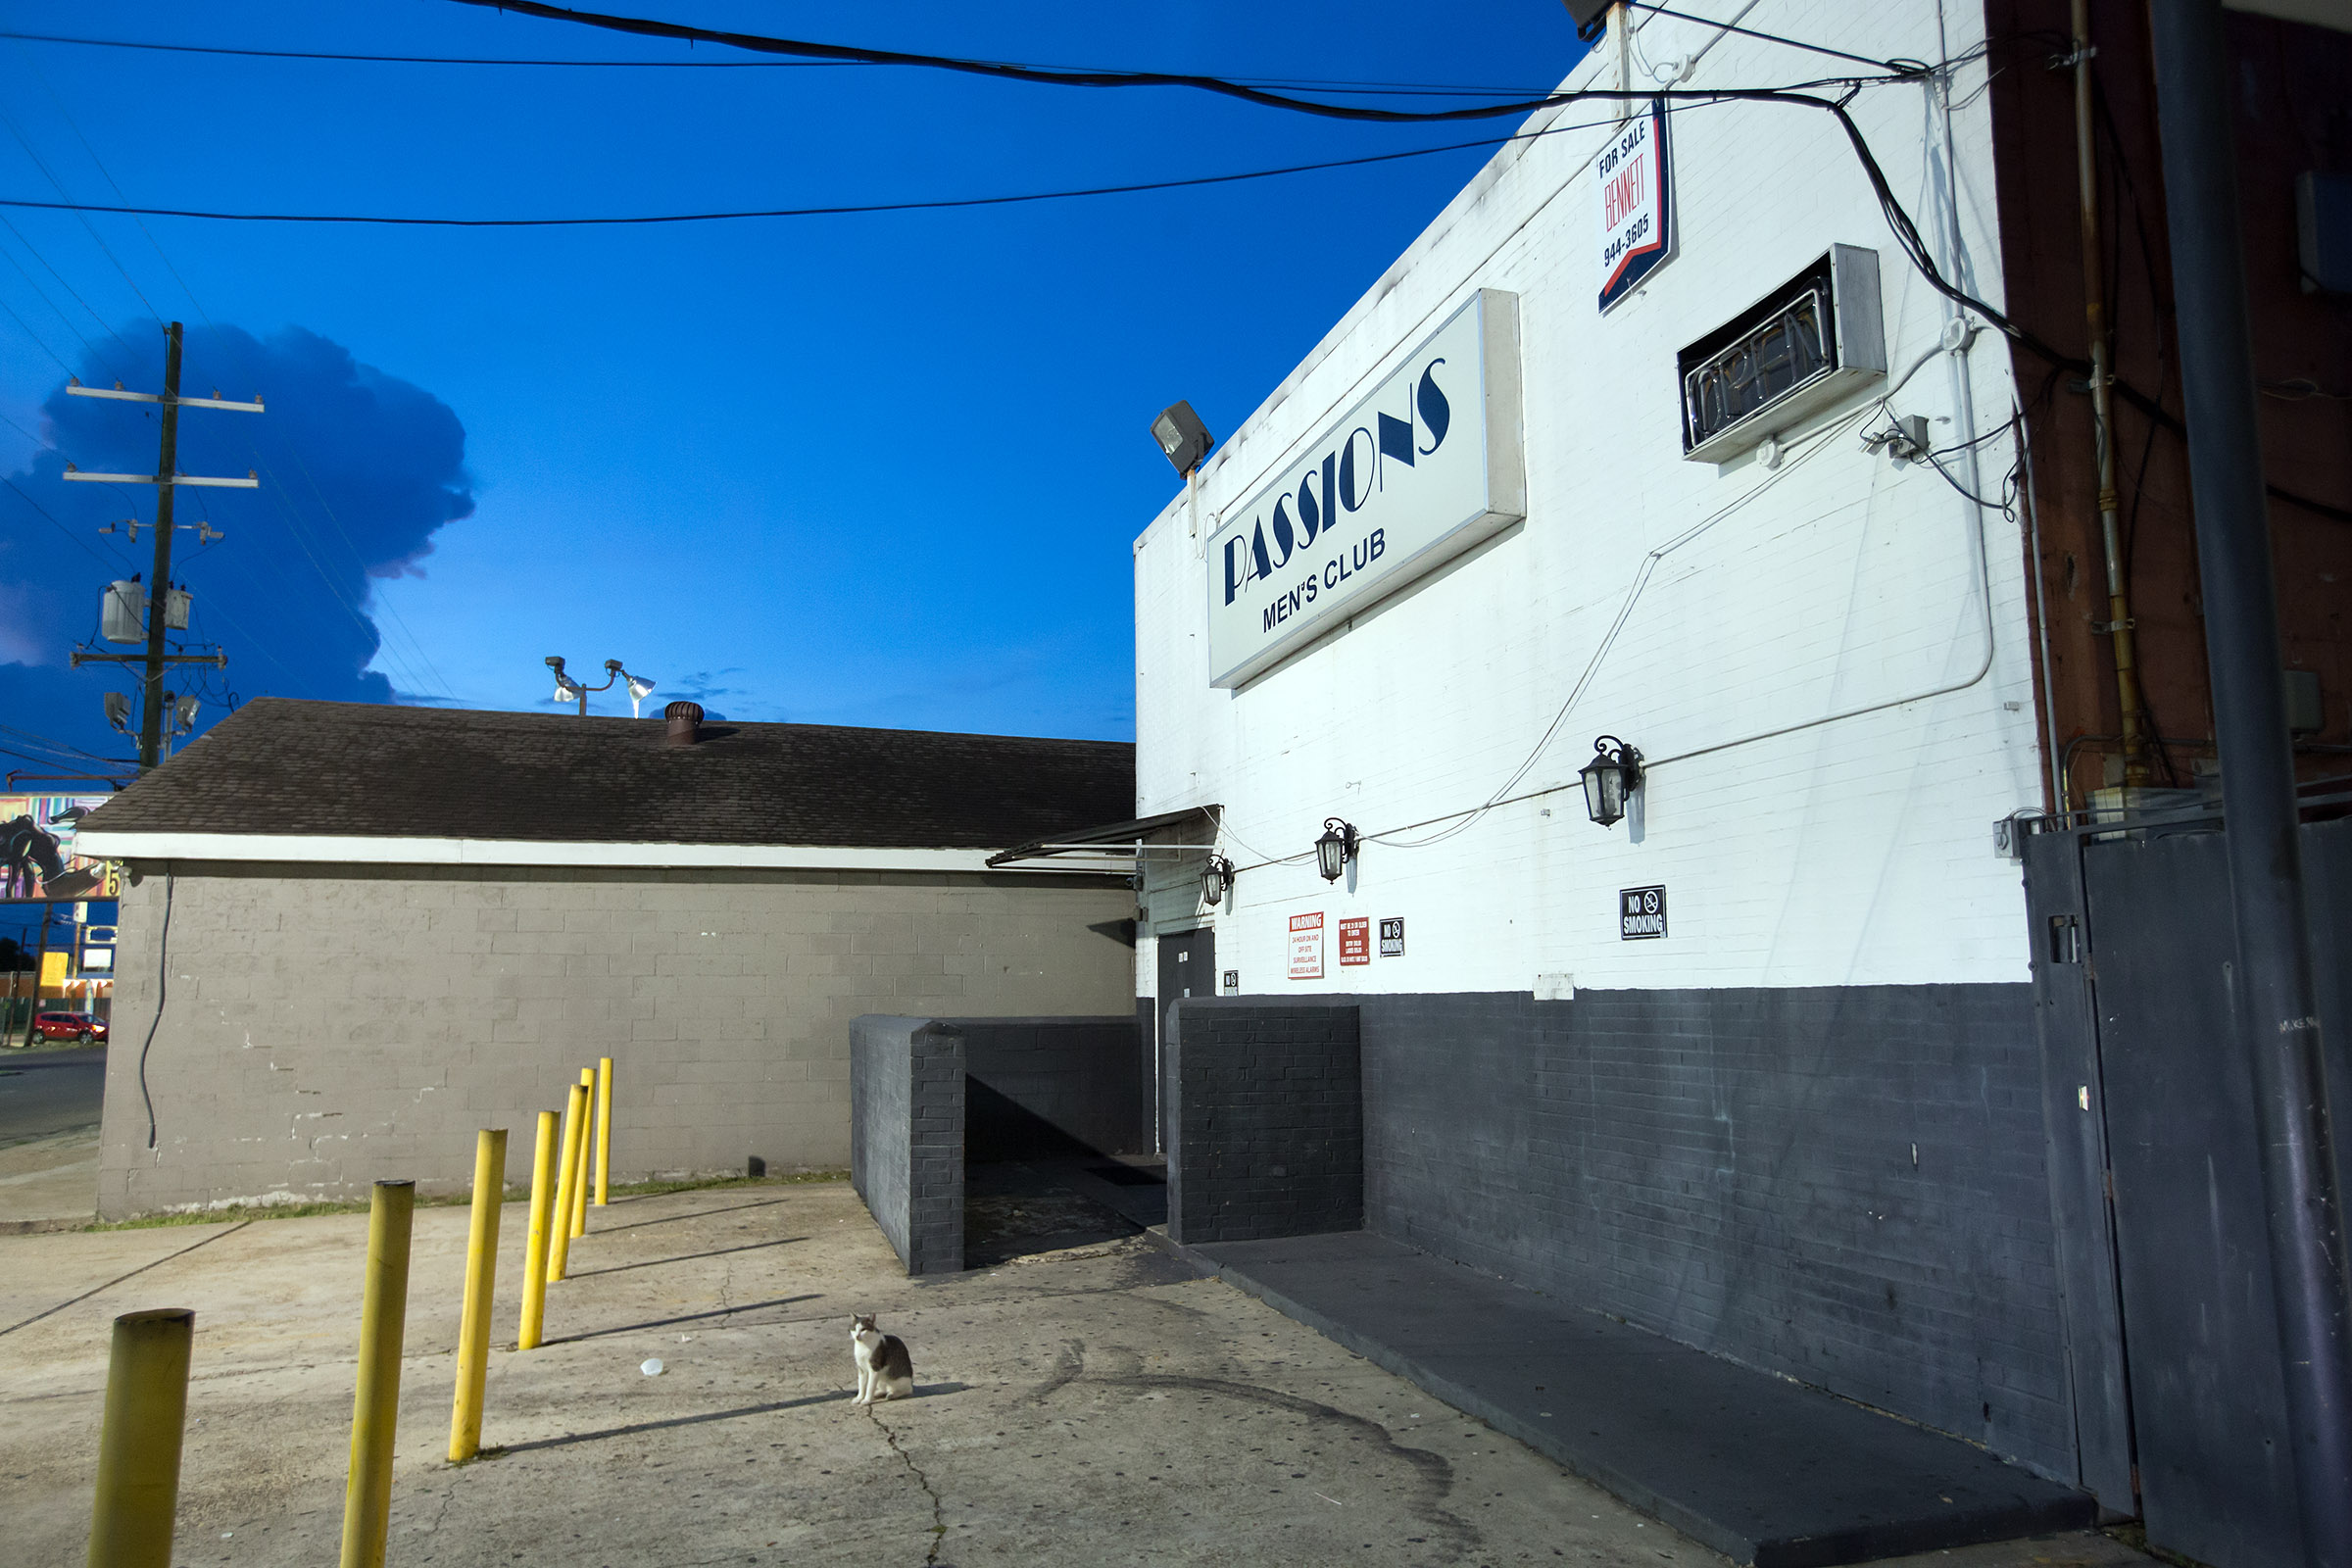 Passions, a strip club at 3921 Downman Road, was among three businesses the Louisiana Office of Alcohol & Tobacco Control raided Aug. 24, 2018 on prostitution and drug charges. The club was cited again Friday, Oct. 19, for serving alcohol without a license. (Photo by David Grunfeld, NOLA.com | The Times-Picayune)